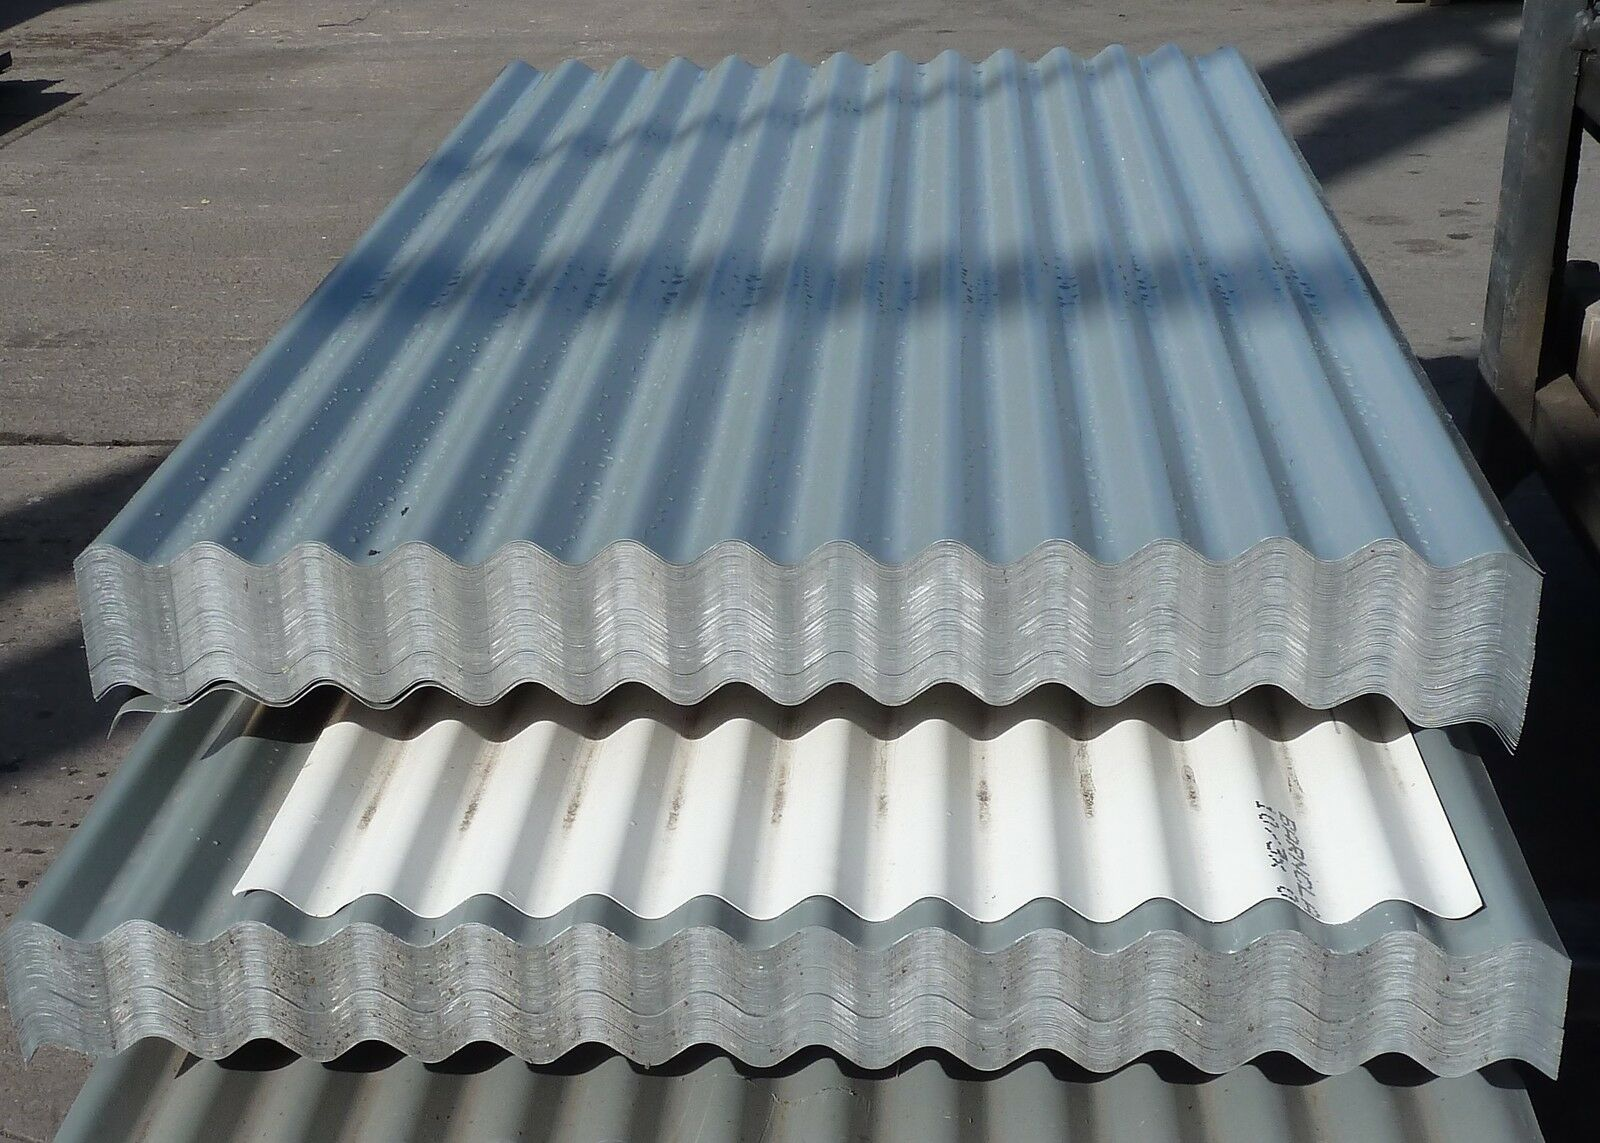 Corrugated Roofing Sheets Merlin Grey Pvc Coated Metal